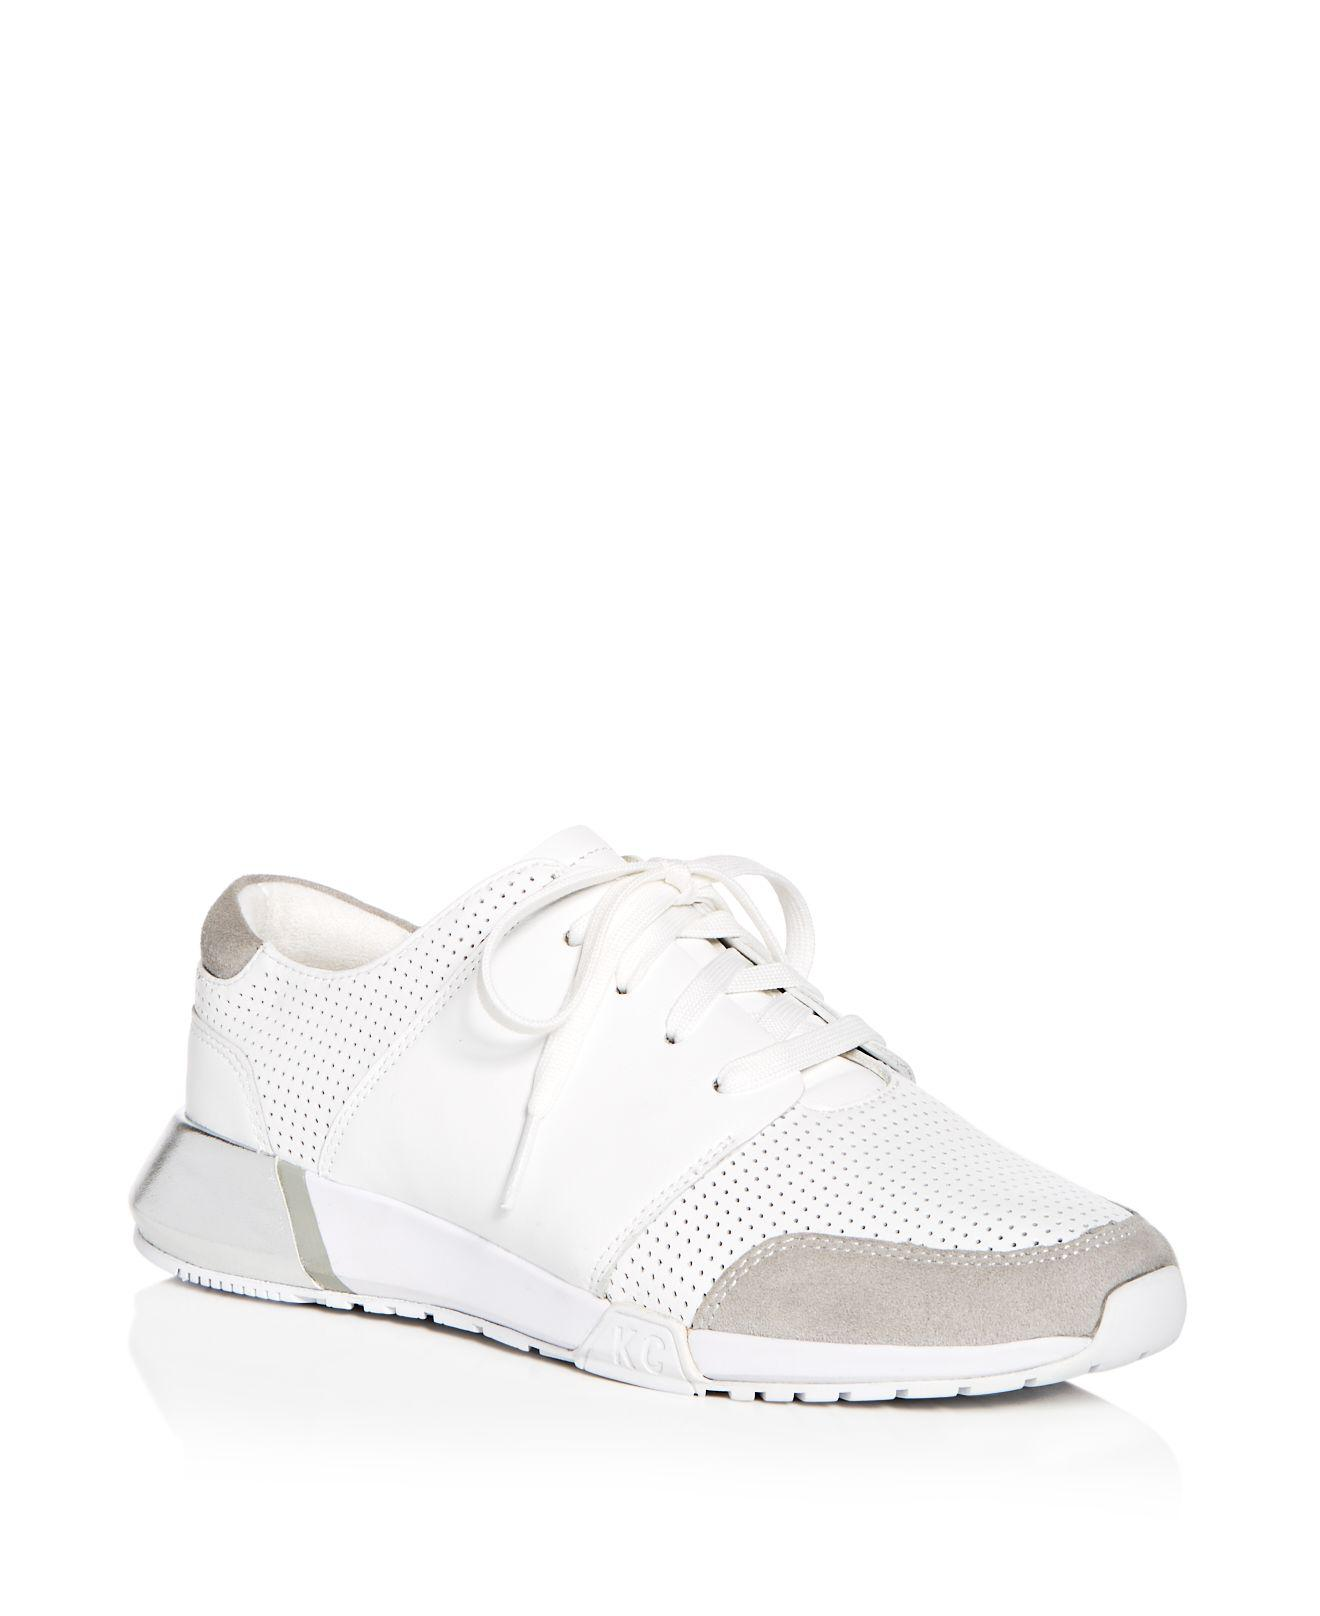 Kenneth Cole Women's Sumner Perforated Leather Lace Up Sneakers LWXZLCUG